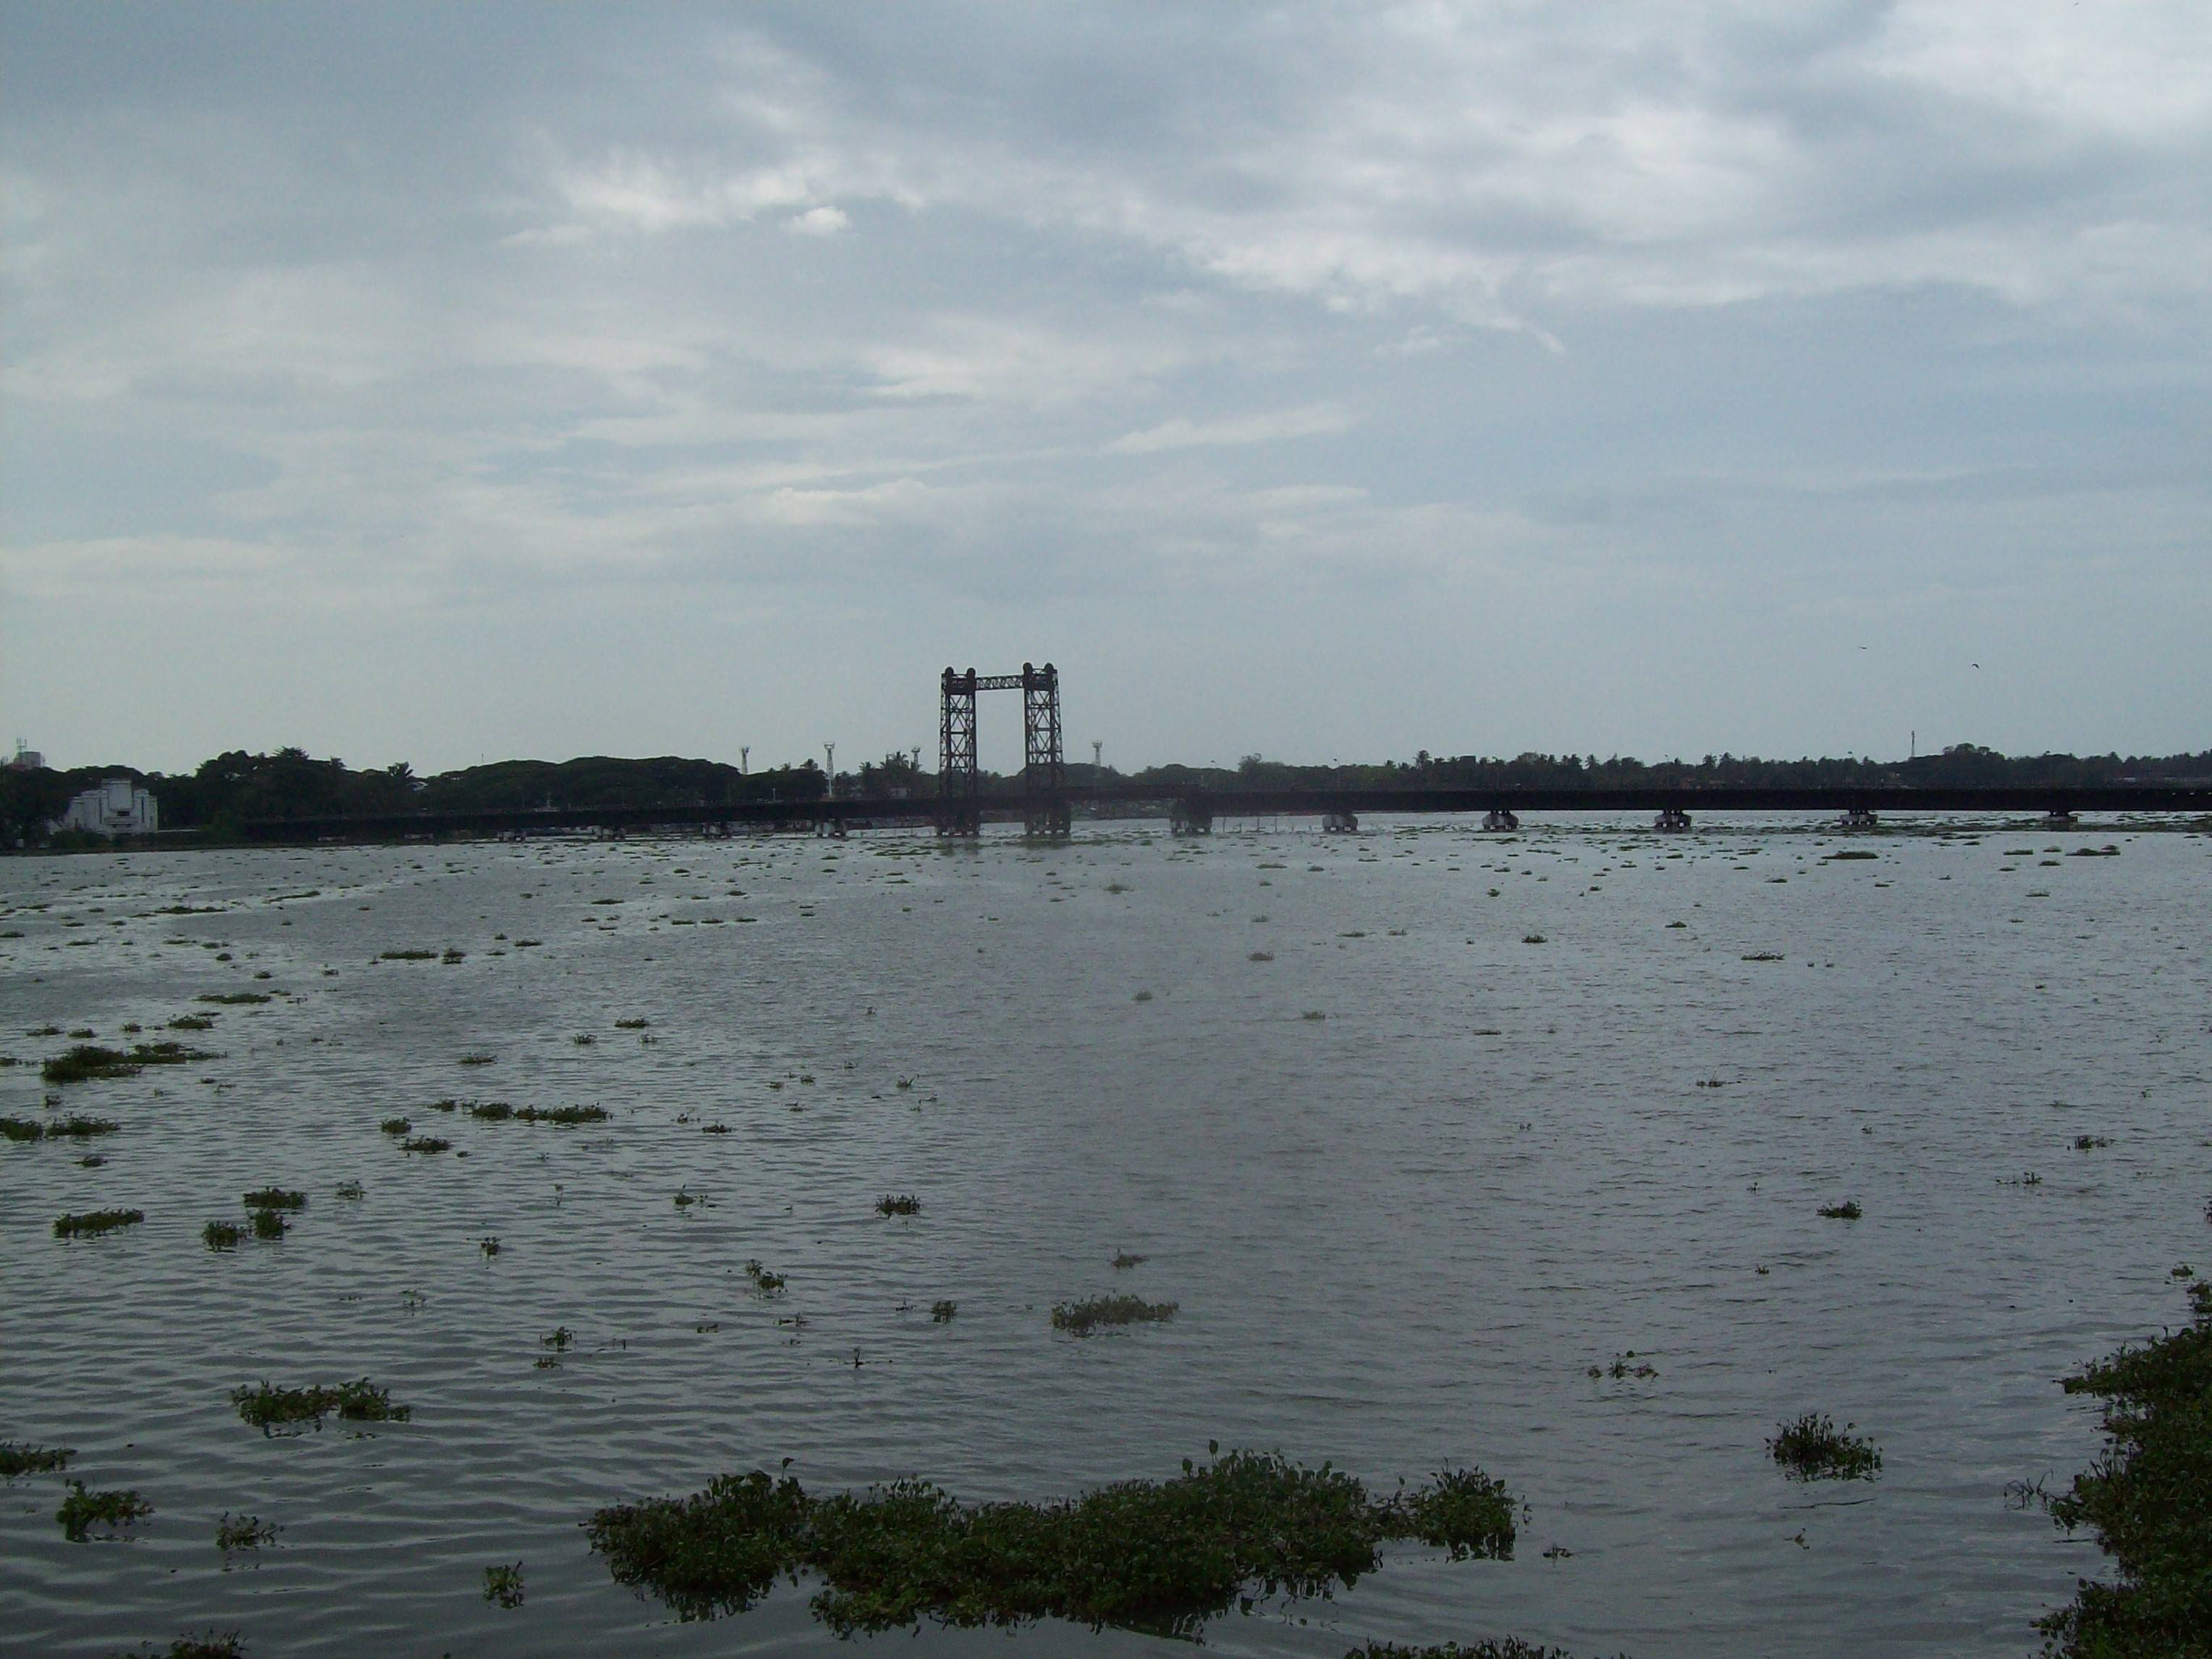 Bridge to Kochi